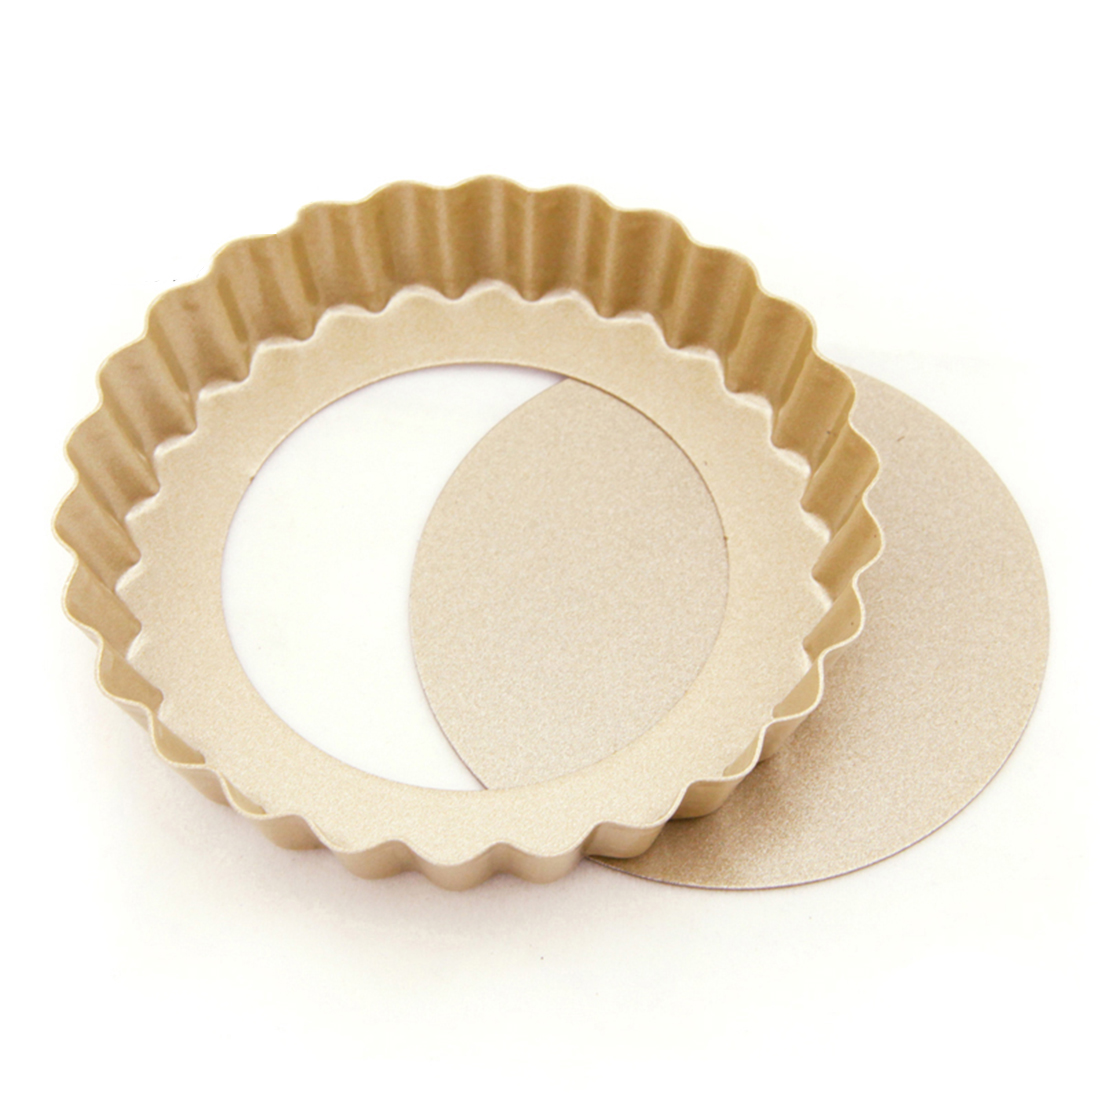 Cookie Cupcake Bread Round Shaped Wavy Edge Baking Mold Mould Bakeware Pan